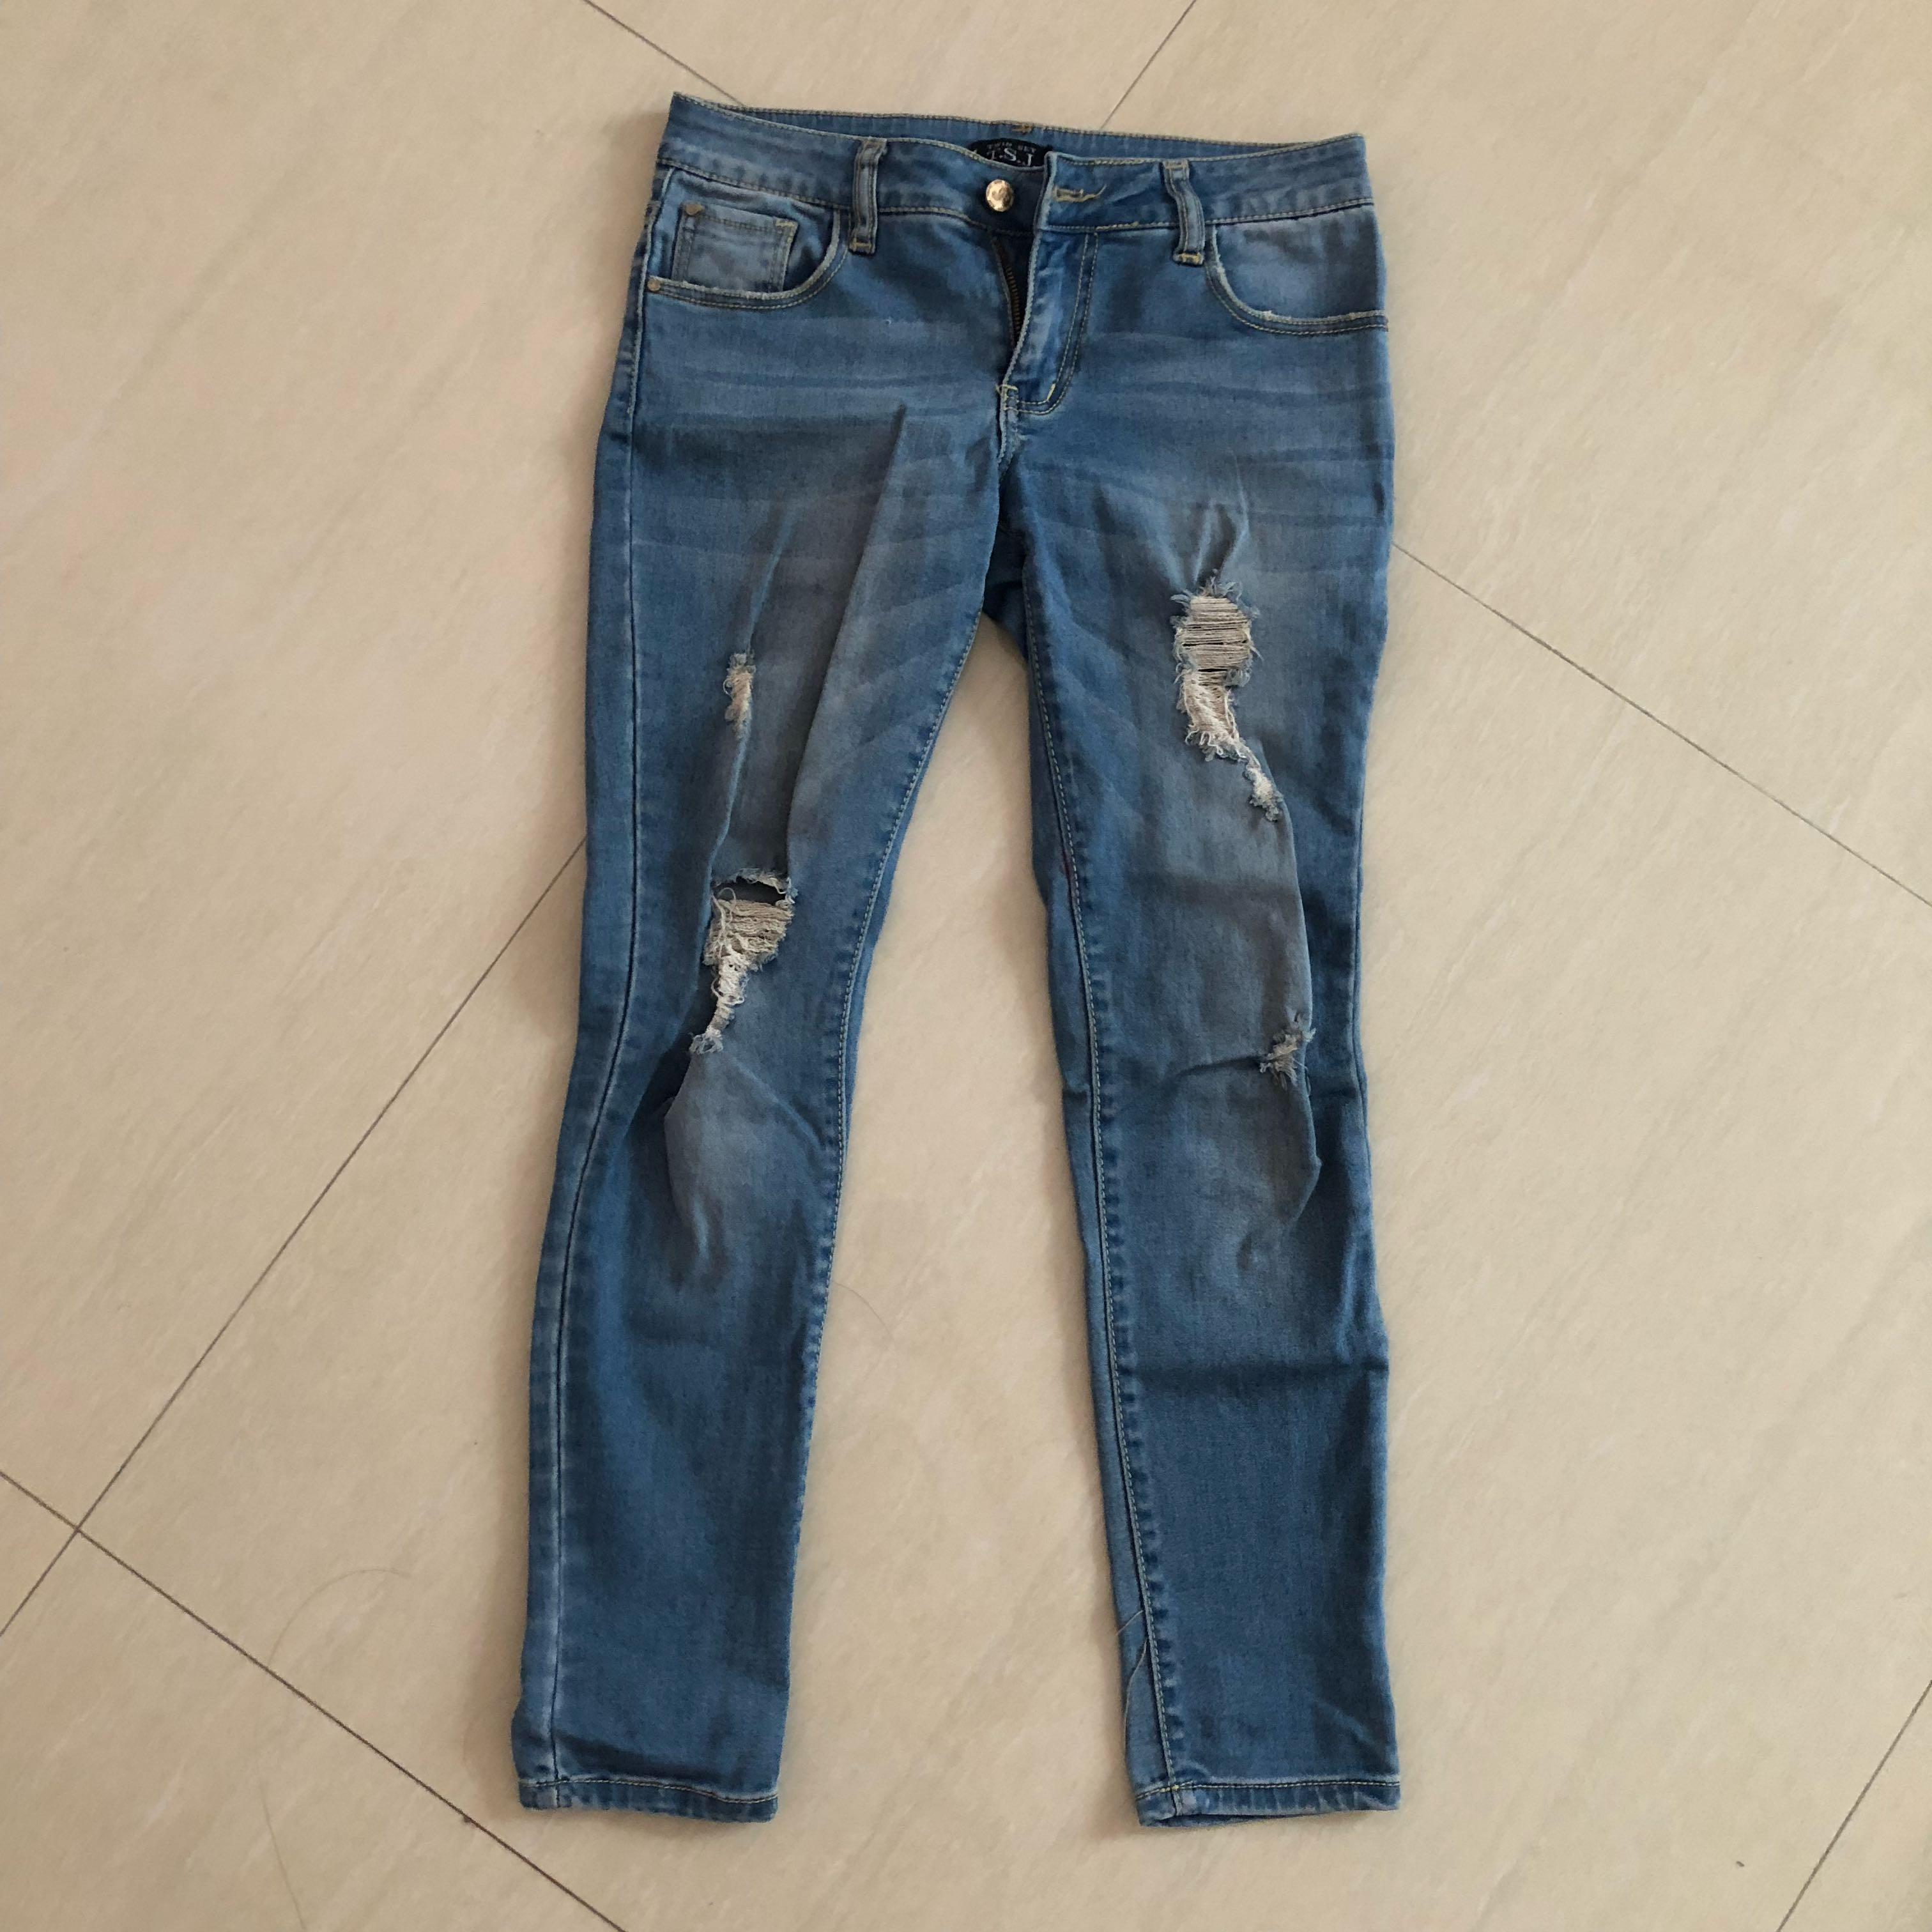 Ripped Jeans size 29